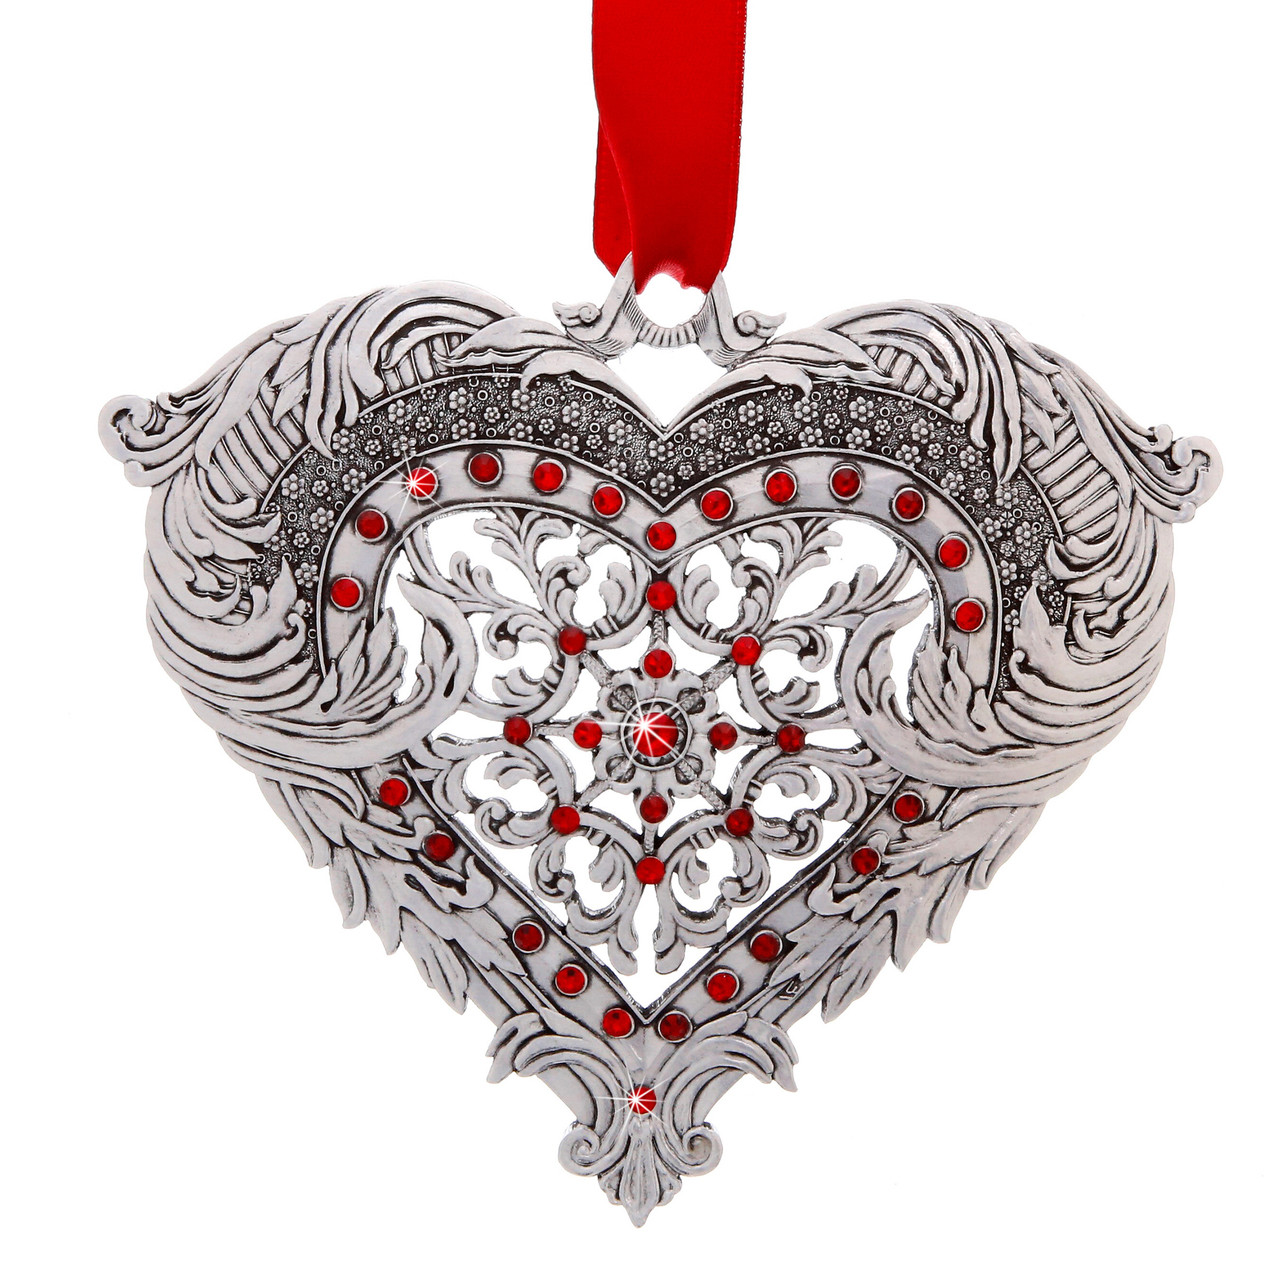 Heart Christmas Ornament Crafted Wedding Gifts Wendell August